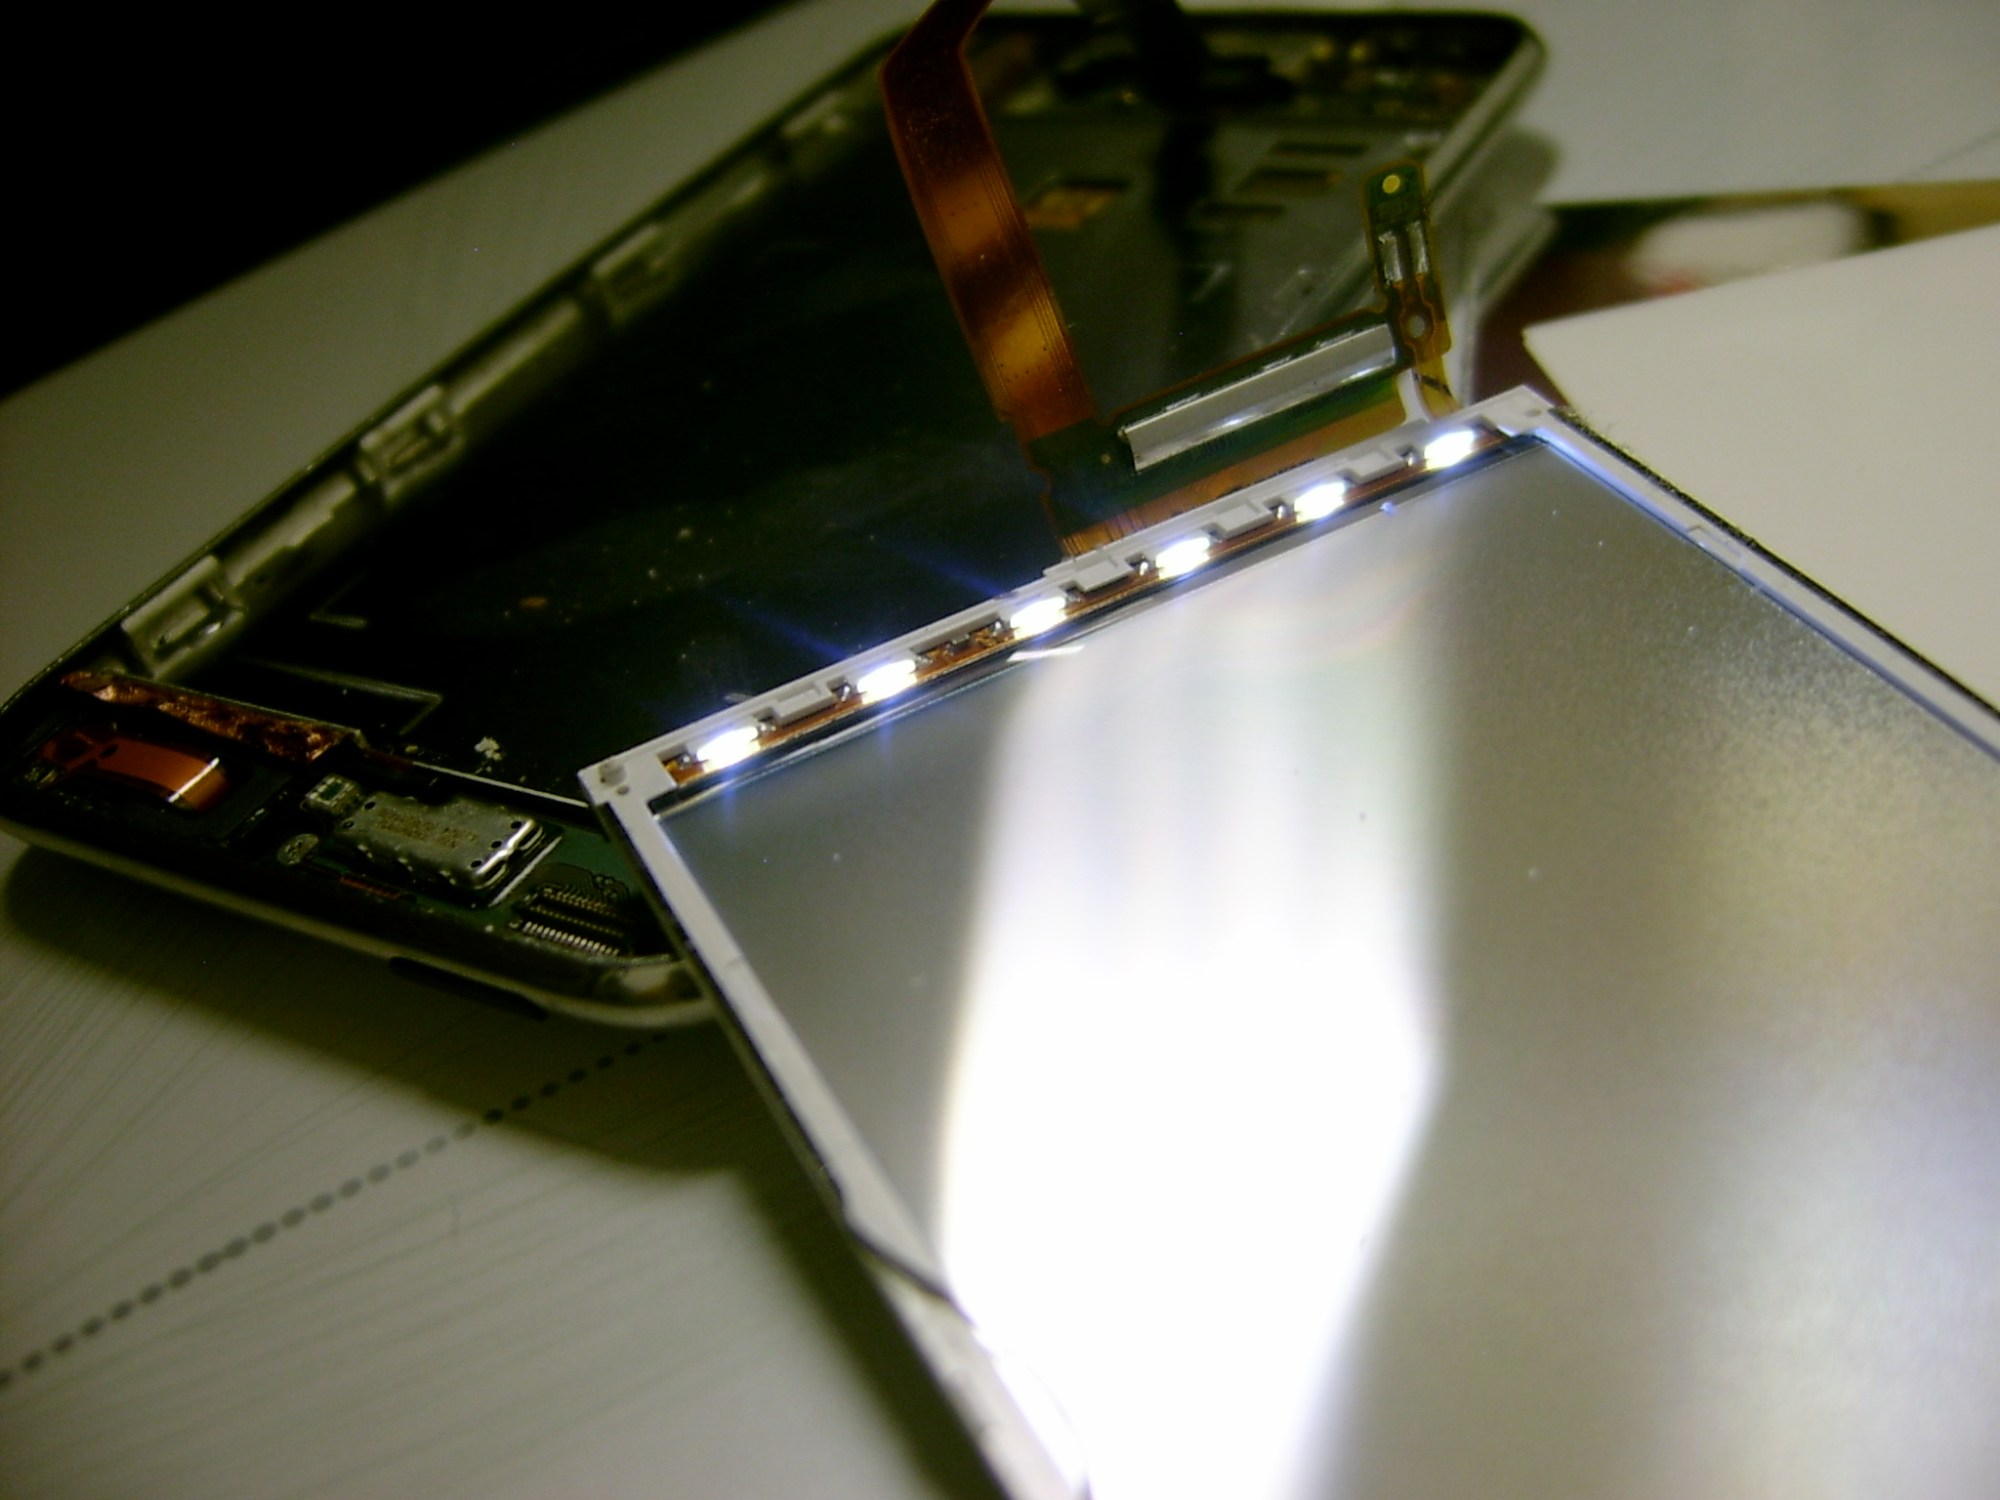 hight resolution of an apple ipod touch music player disassembled to show the array of white edge led s powered on with the device rethecat